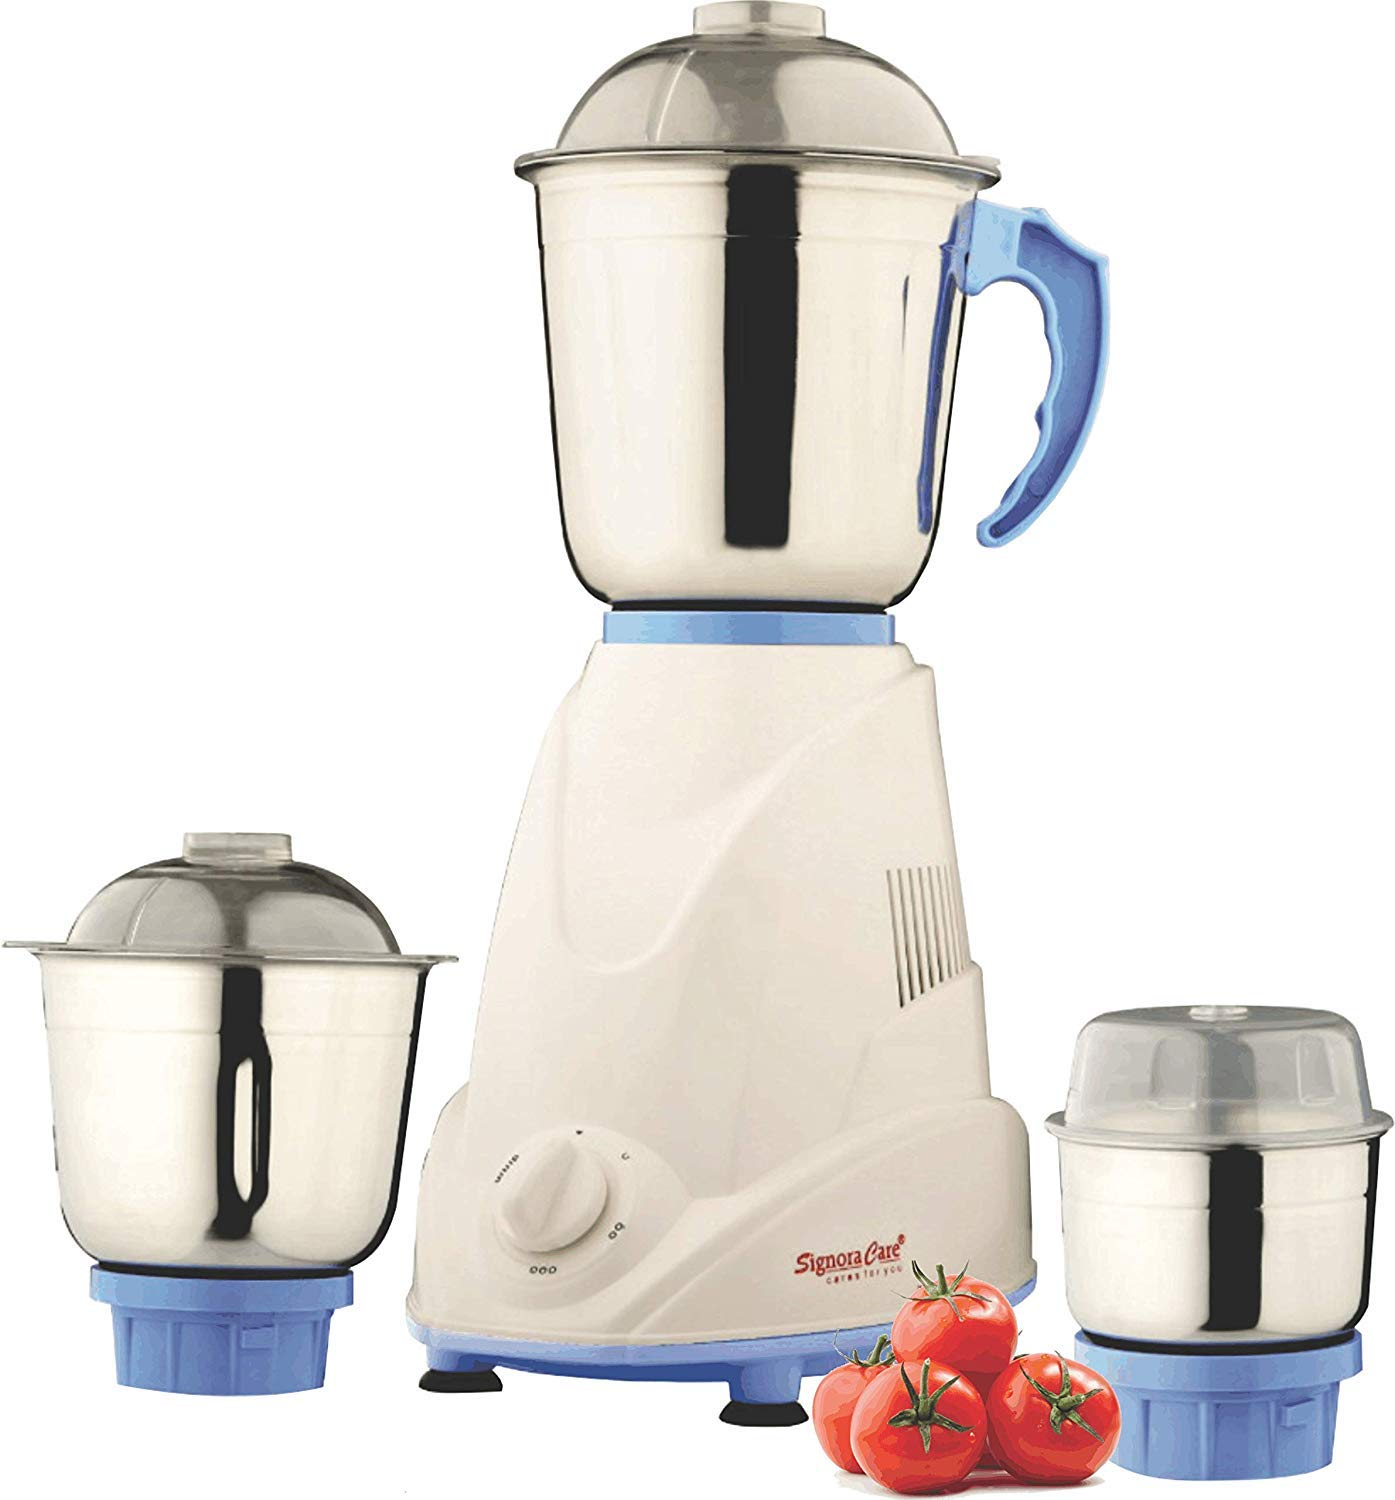 Best Mixer Grinder under 1000 Rs in India - Editor's Choice 1